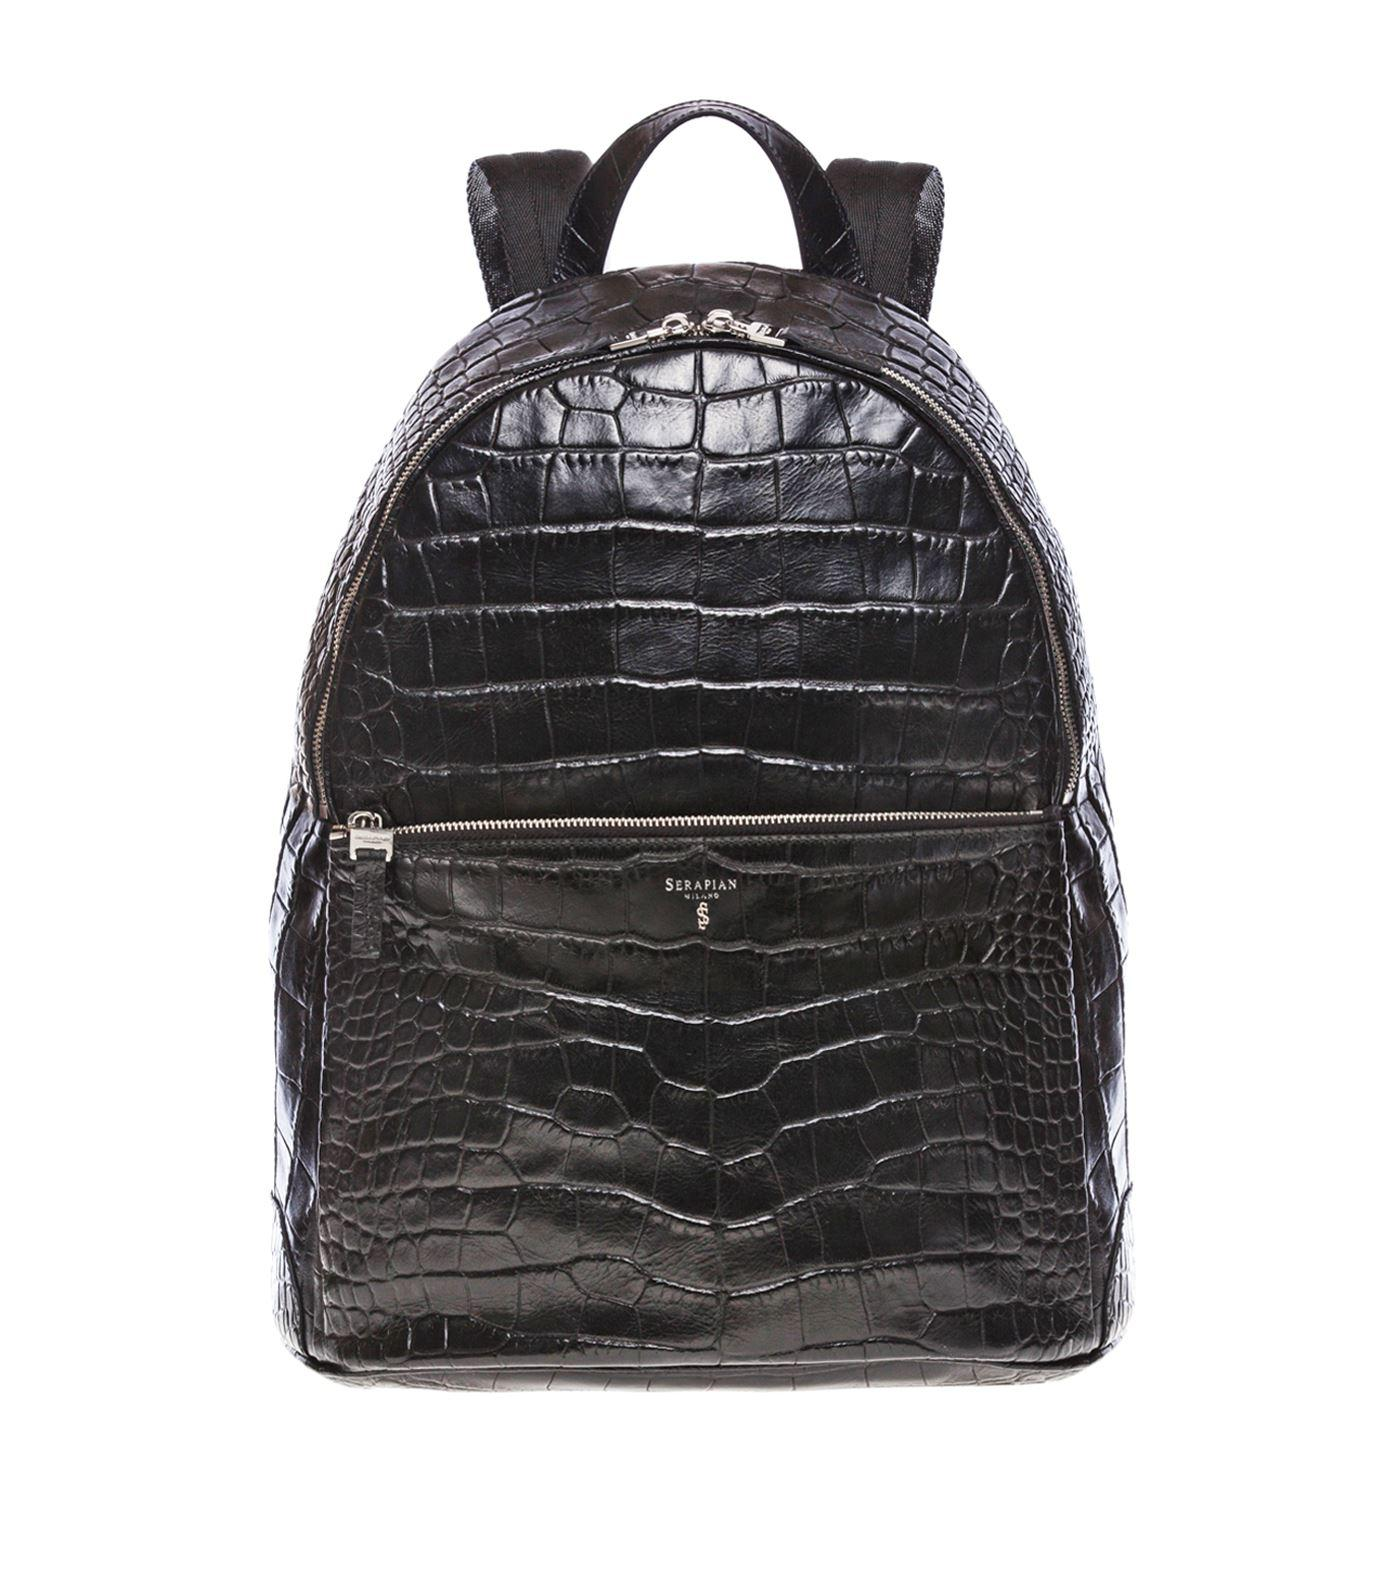 4ac9b24eed1 Lyst - Serapian Croc-embossed Leather Backpack in Black - Save ...